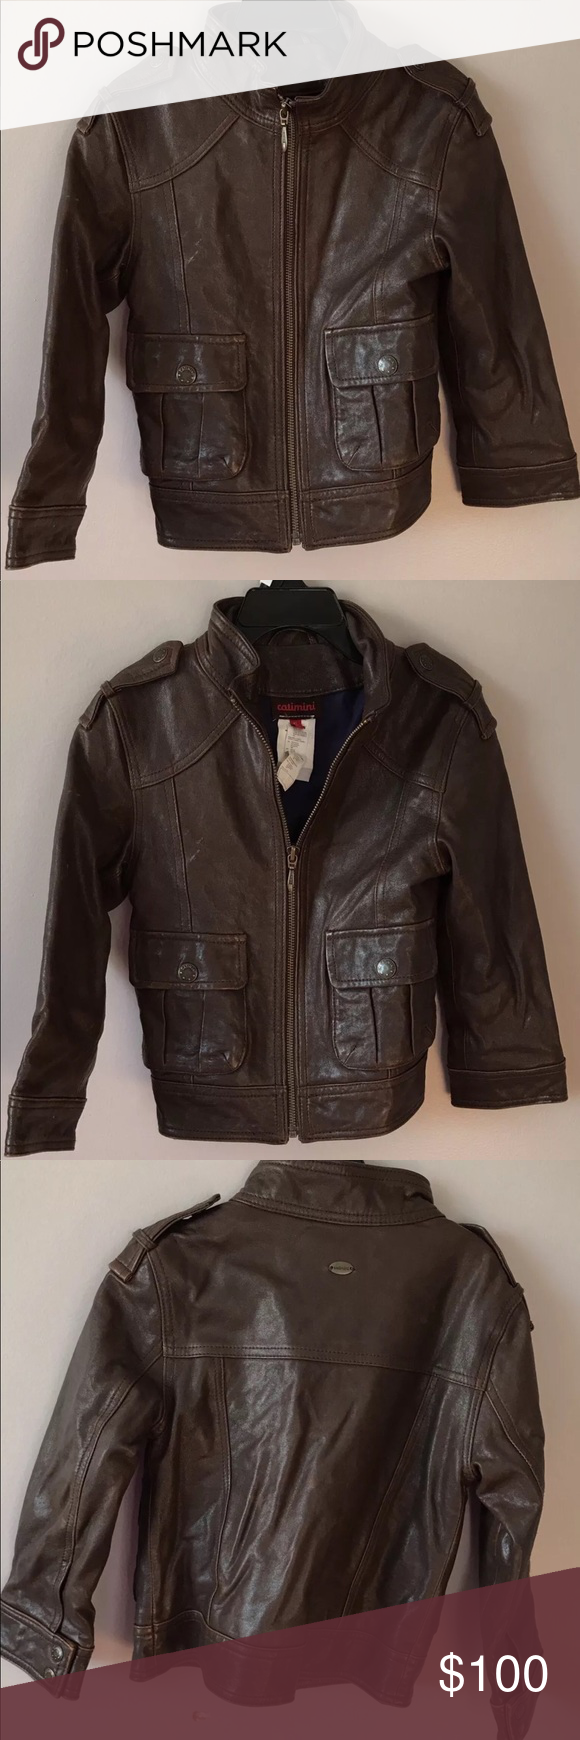 Catimini Sz 5 Brown Leather Jacket France XC pure